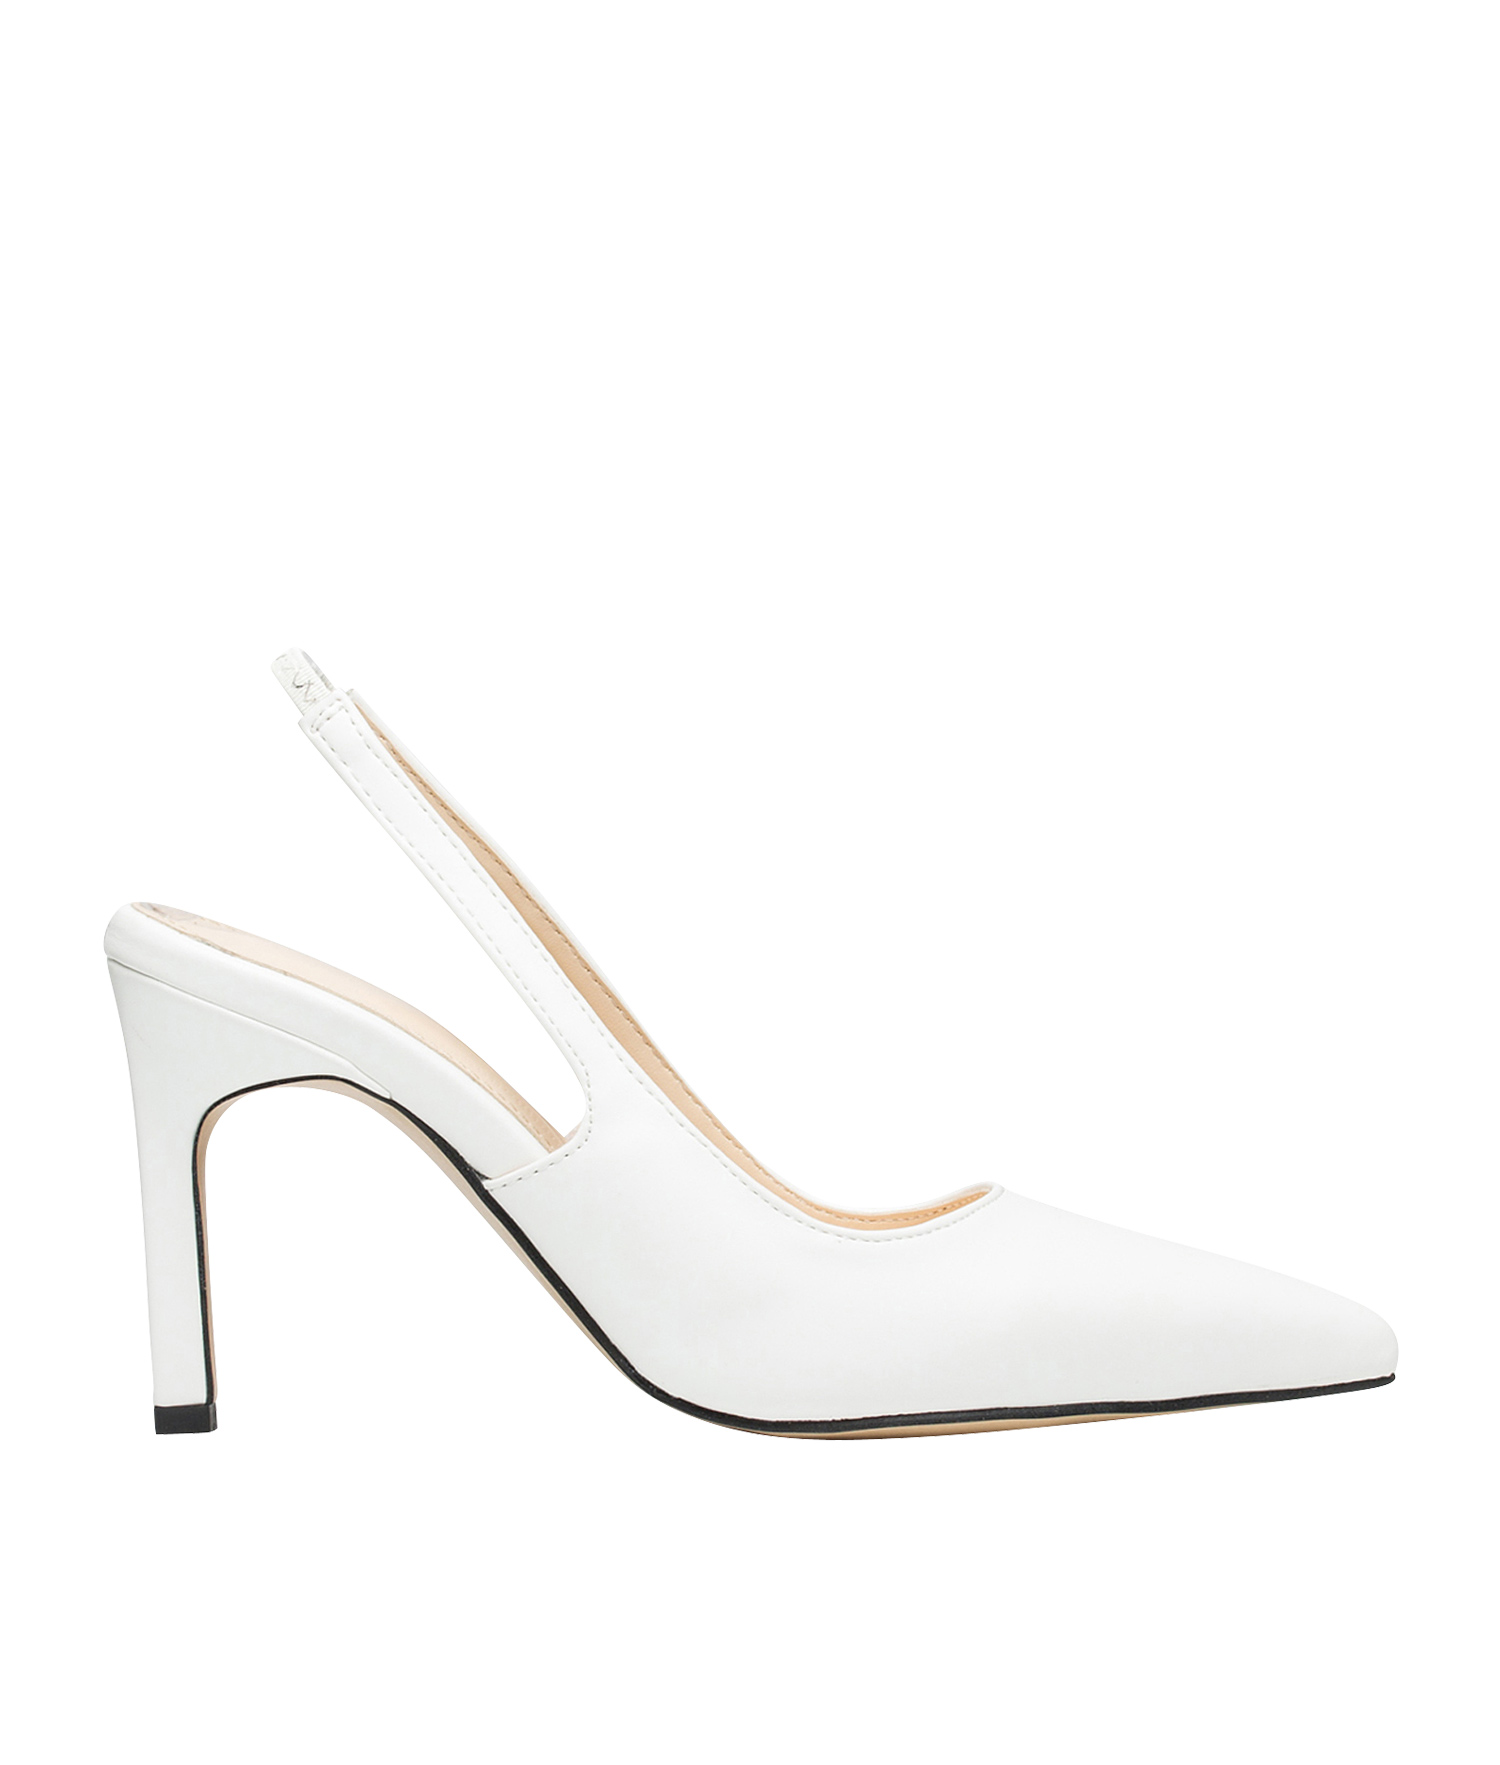 f09936a27ed8 AnnaKastle Womens Sleek Closed Toe Slingback Heels White